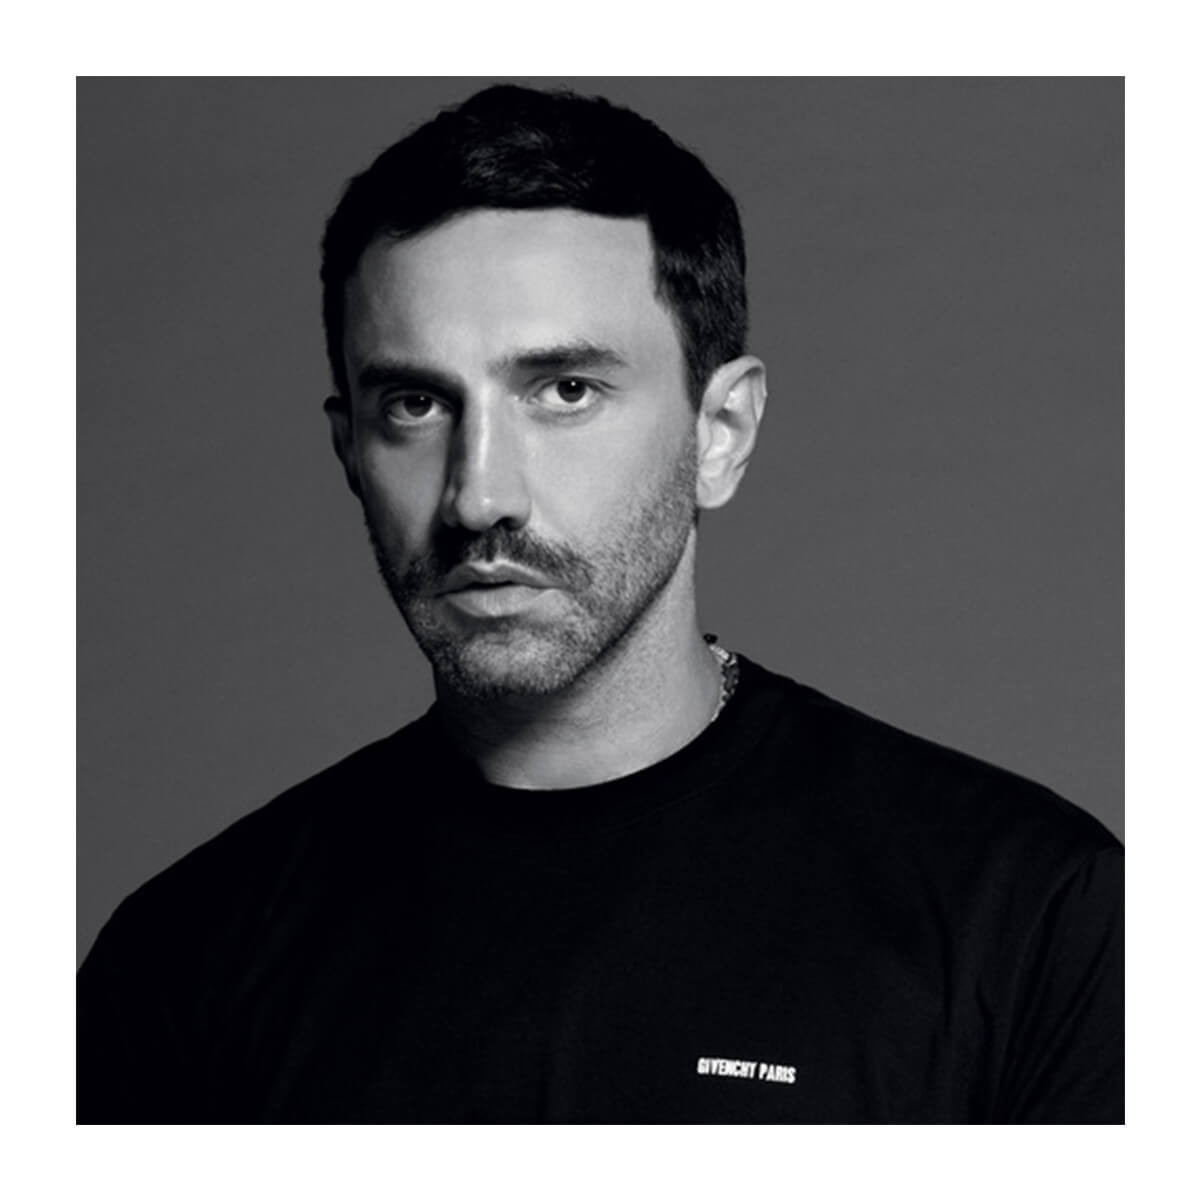 Communication on this topic: Riccardo Tisci To Join Burberry as Chief , riccardo-tisci-to-join-burberry-as-chief/